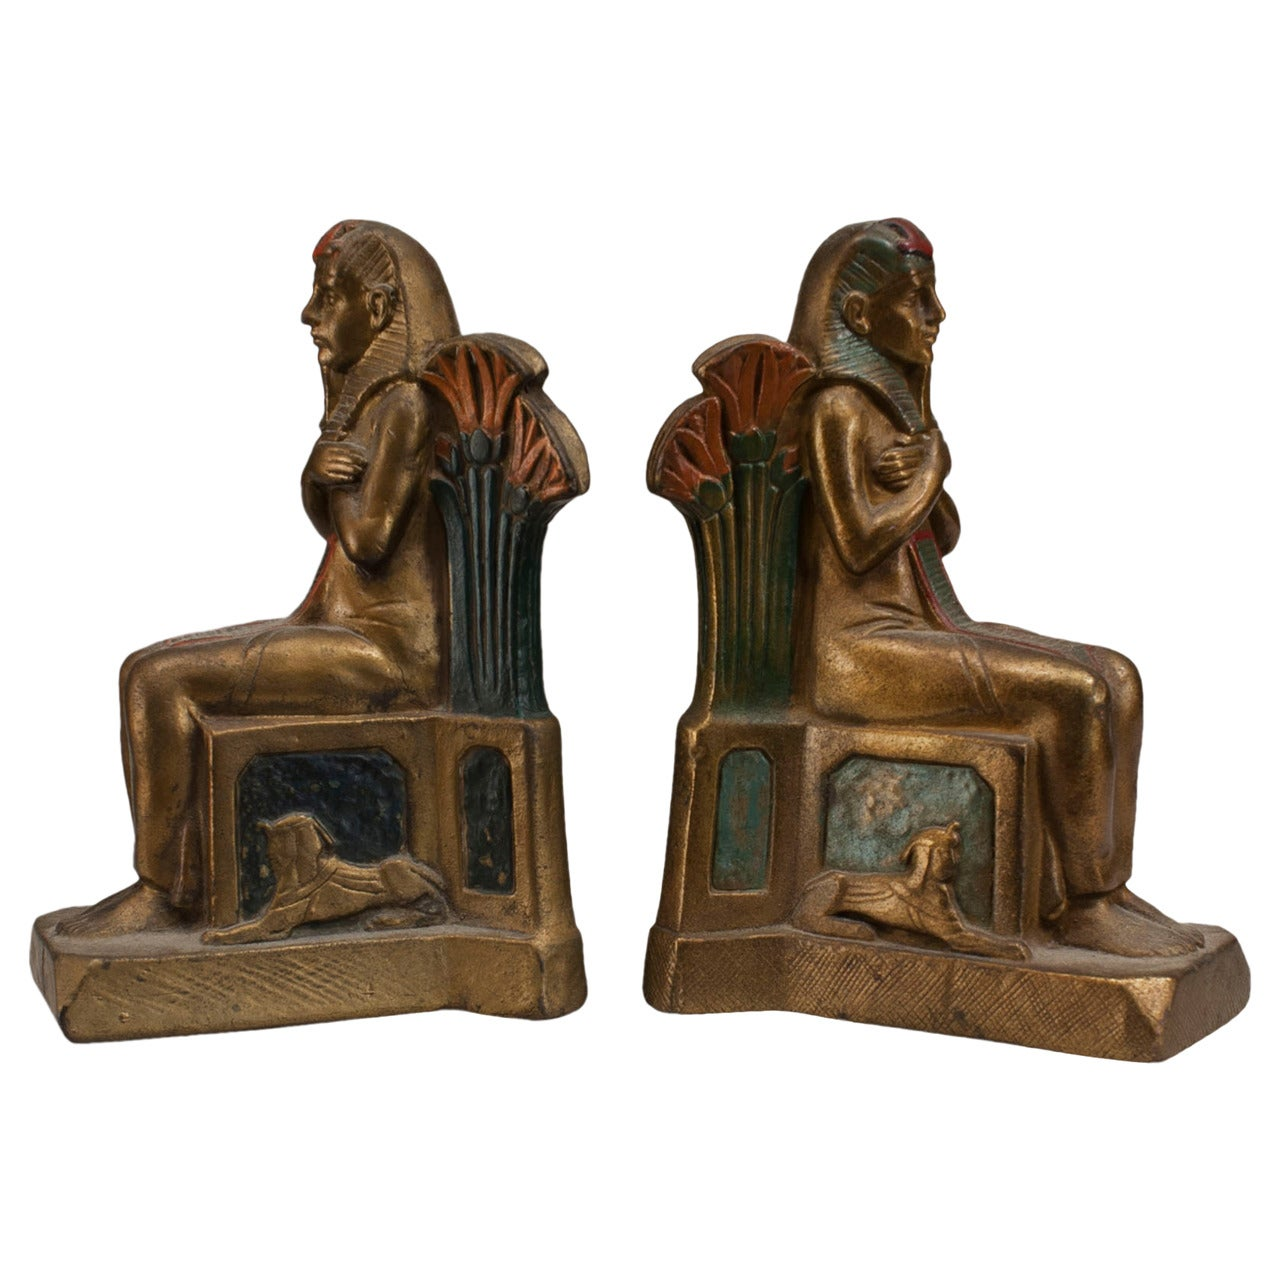 Pair of Early 20th Century Czech, Egyptian Revival Seated Pharaoh Bookends